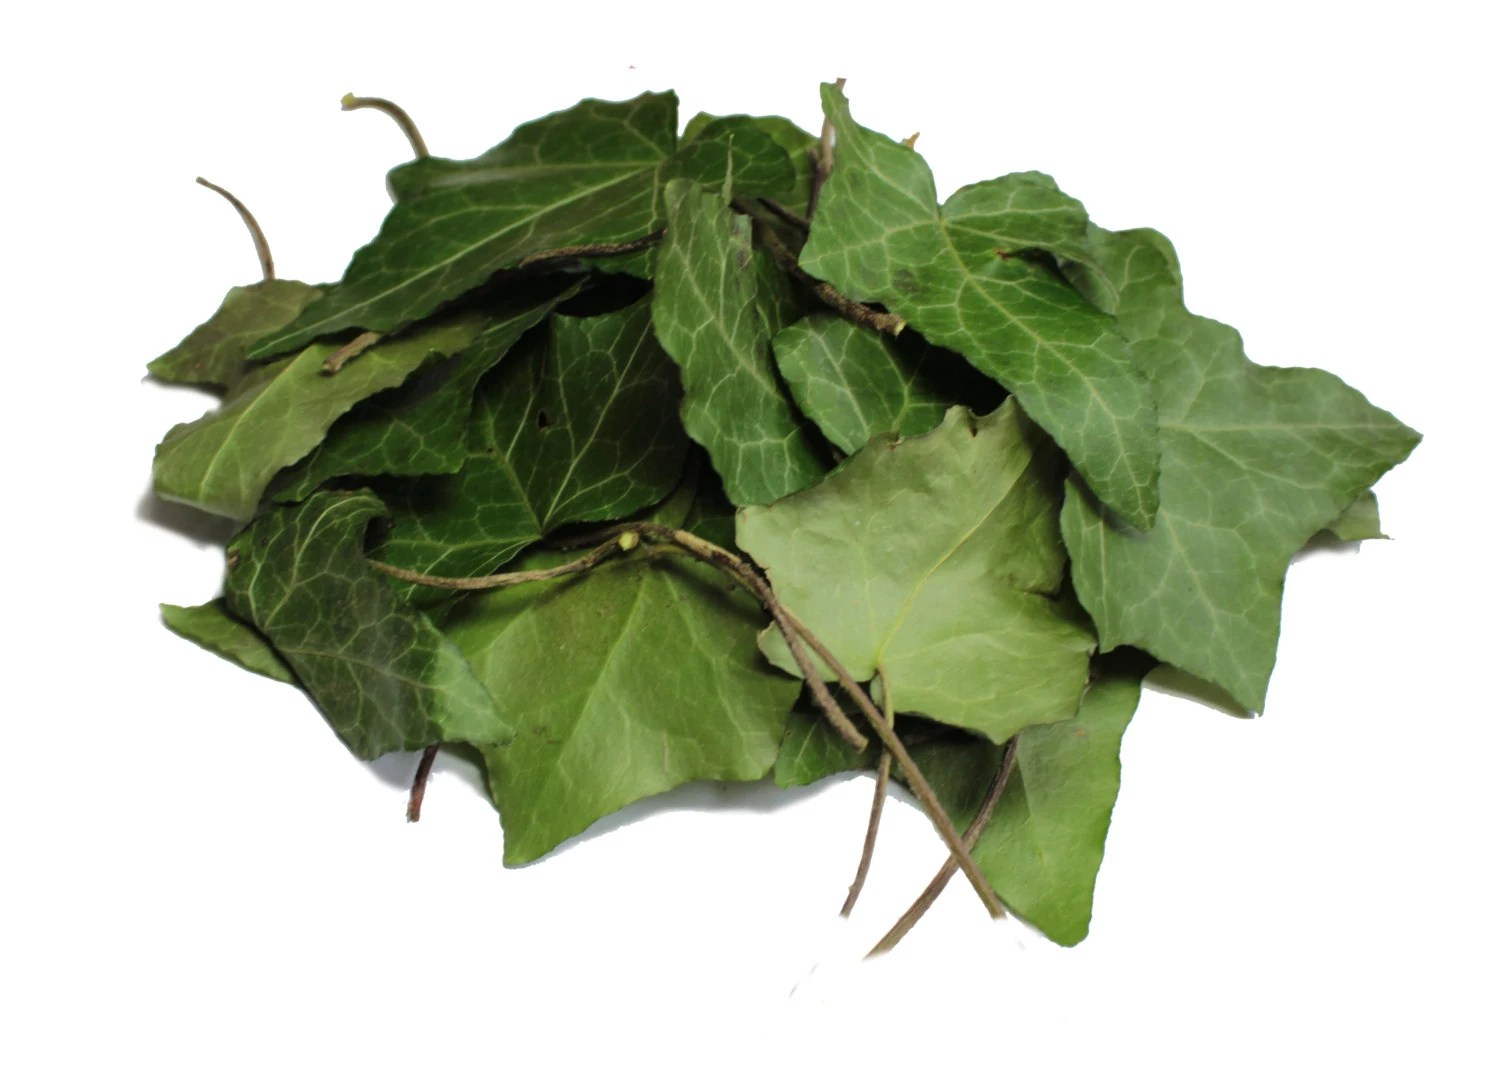 Dried Organic Ivy Leaves 1 oz 30 g Hedera helix common